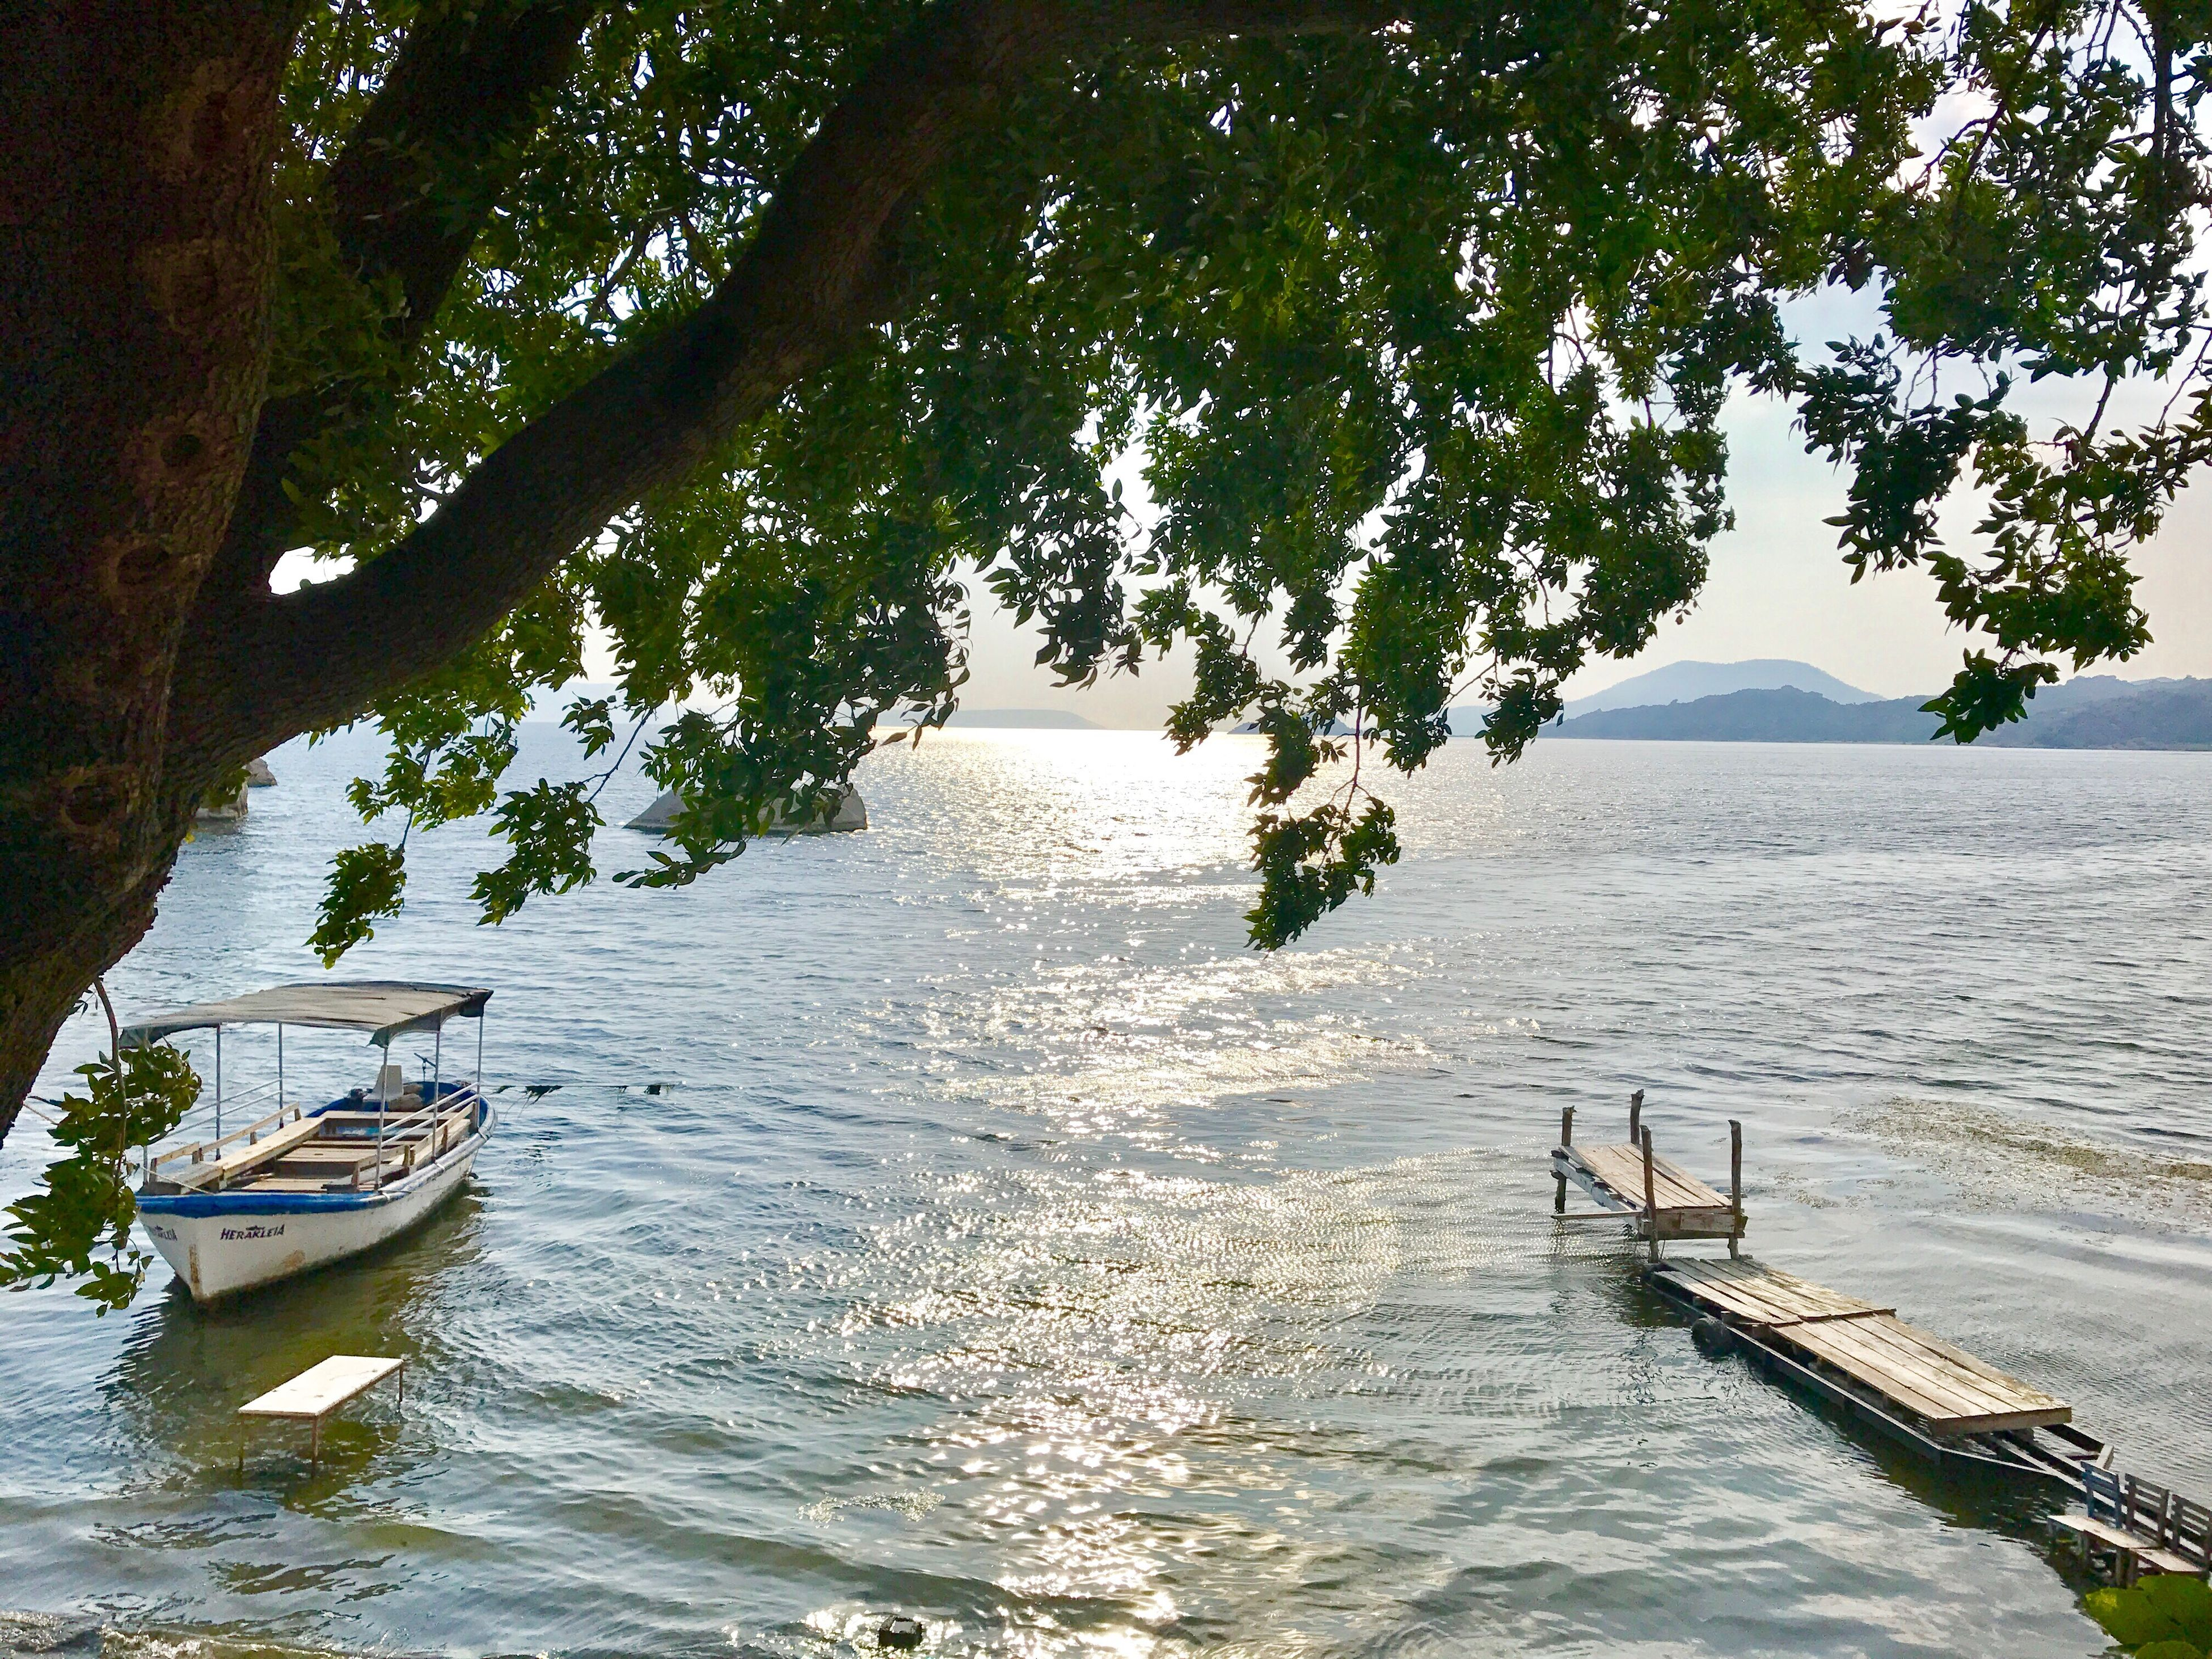 tree, nature, tranquility, water, scenics, tranquil scene, transportation, nautical vessel, beauty in nature, outdoors, day, no people, lake, moored